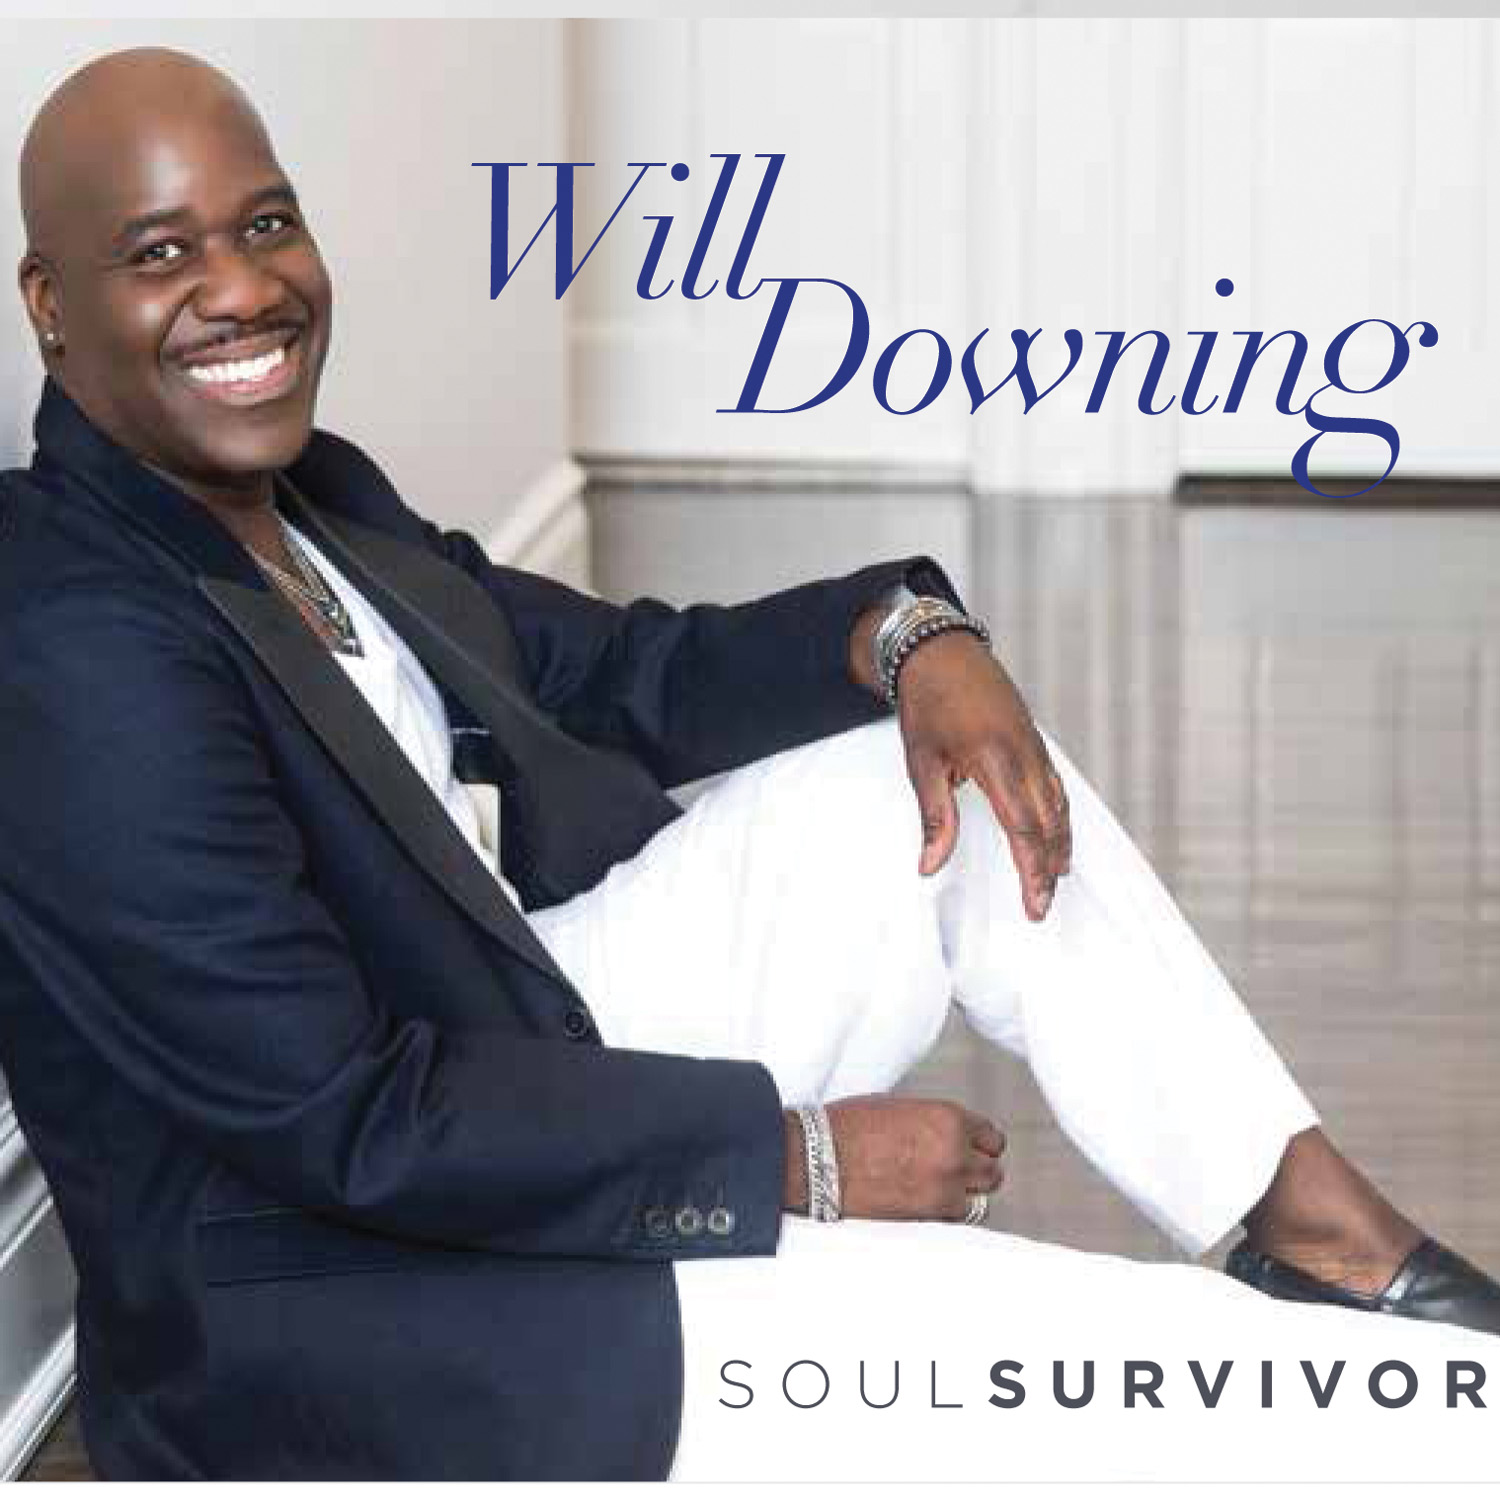 Will Downing Soul Survivor Album Cover